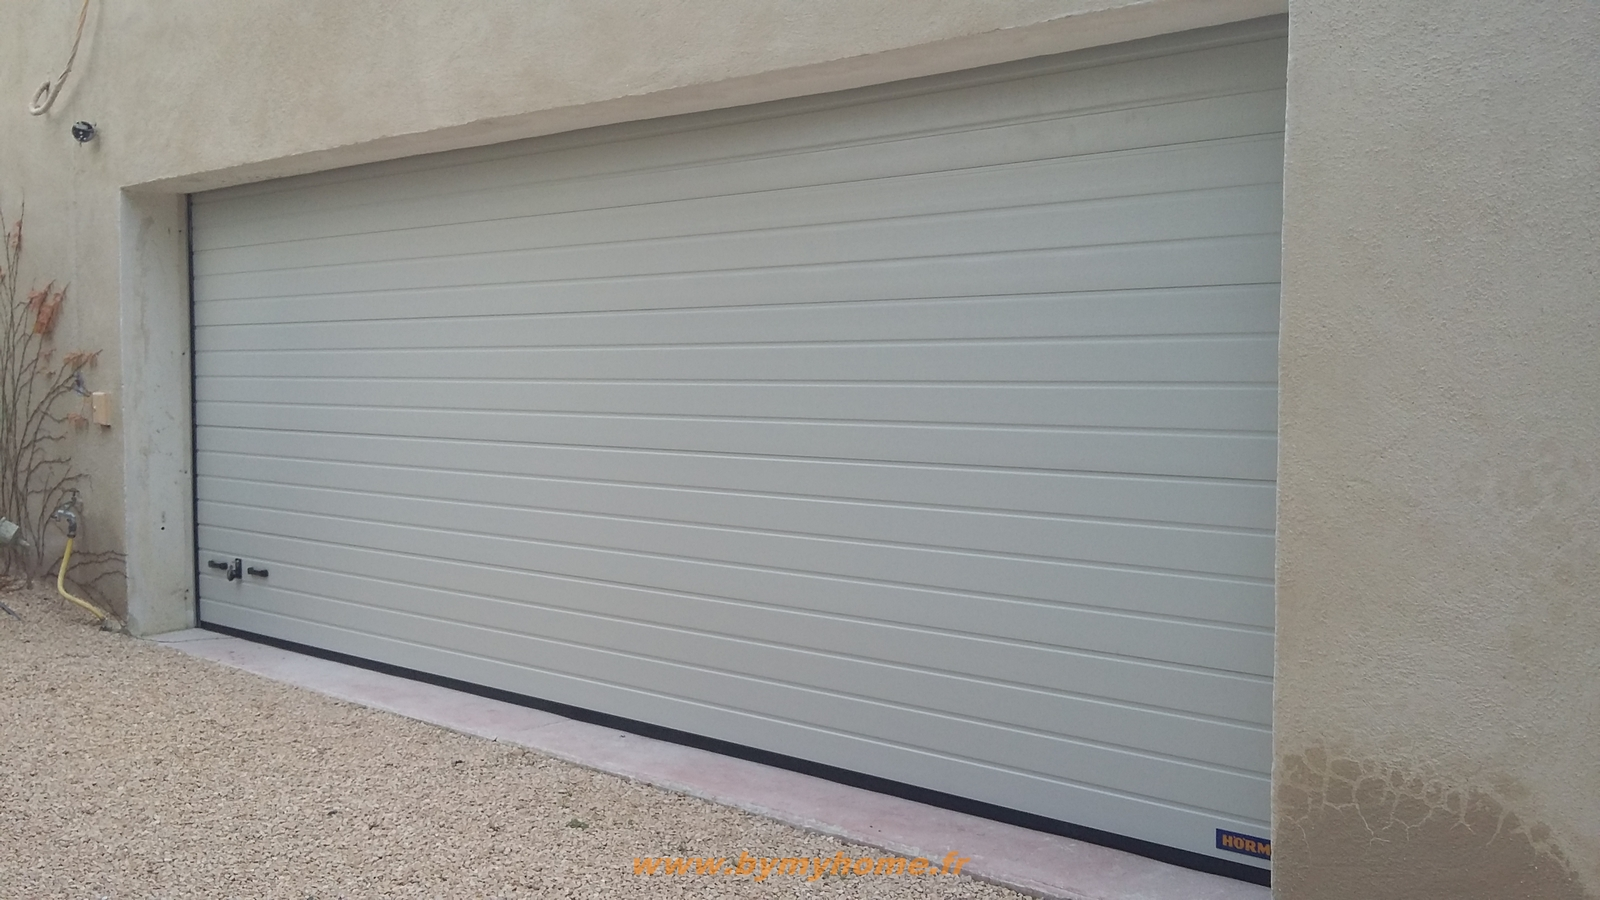 Installation d 39 une porte de garage sectionnelle motoris e saint r my de provence en 2015 - Porte garage sectionnelle motorisee ...